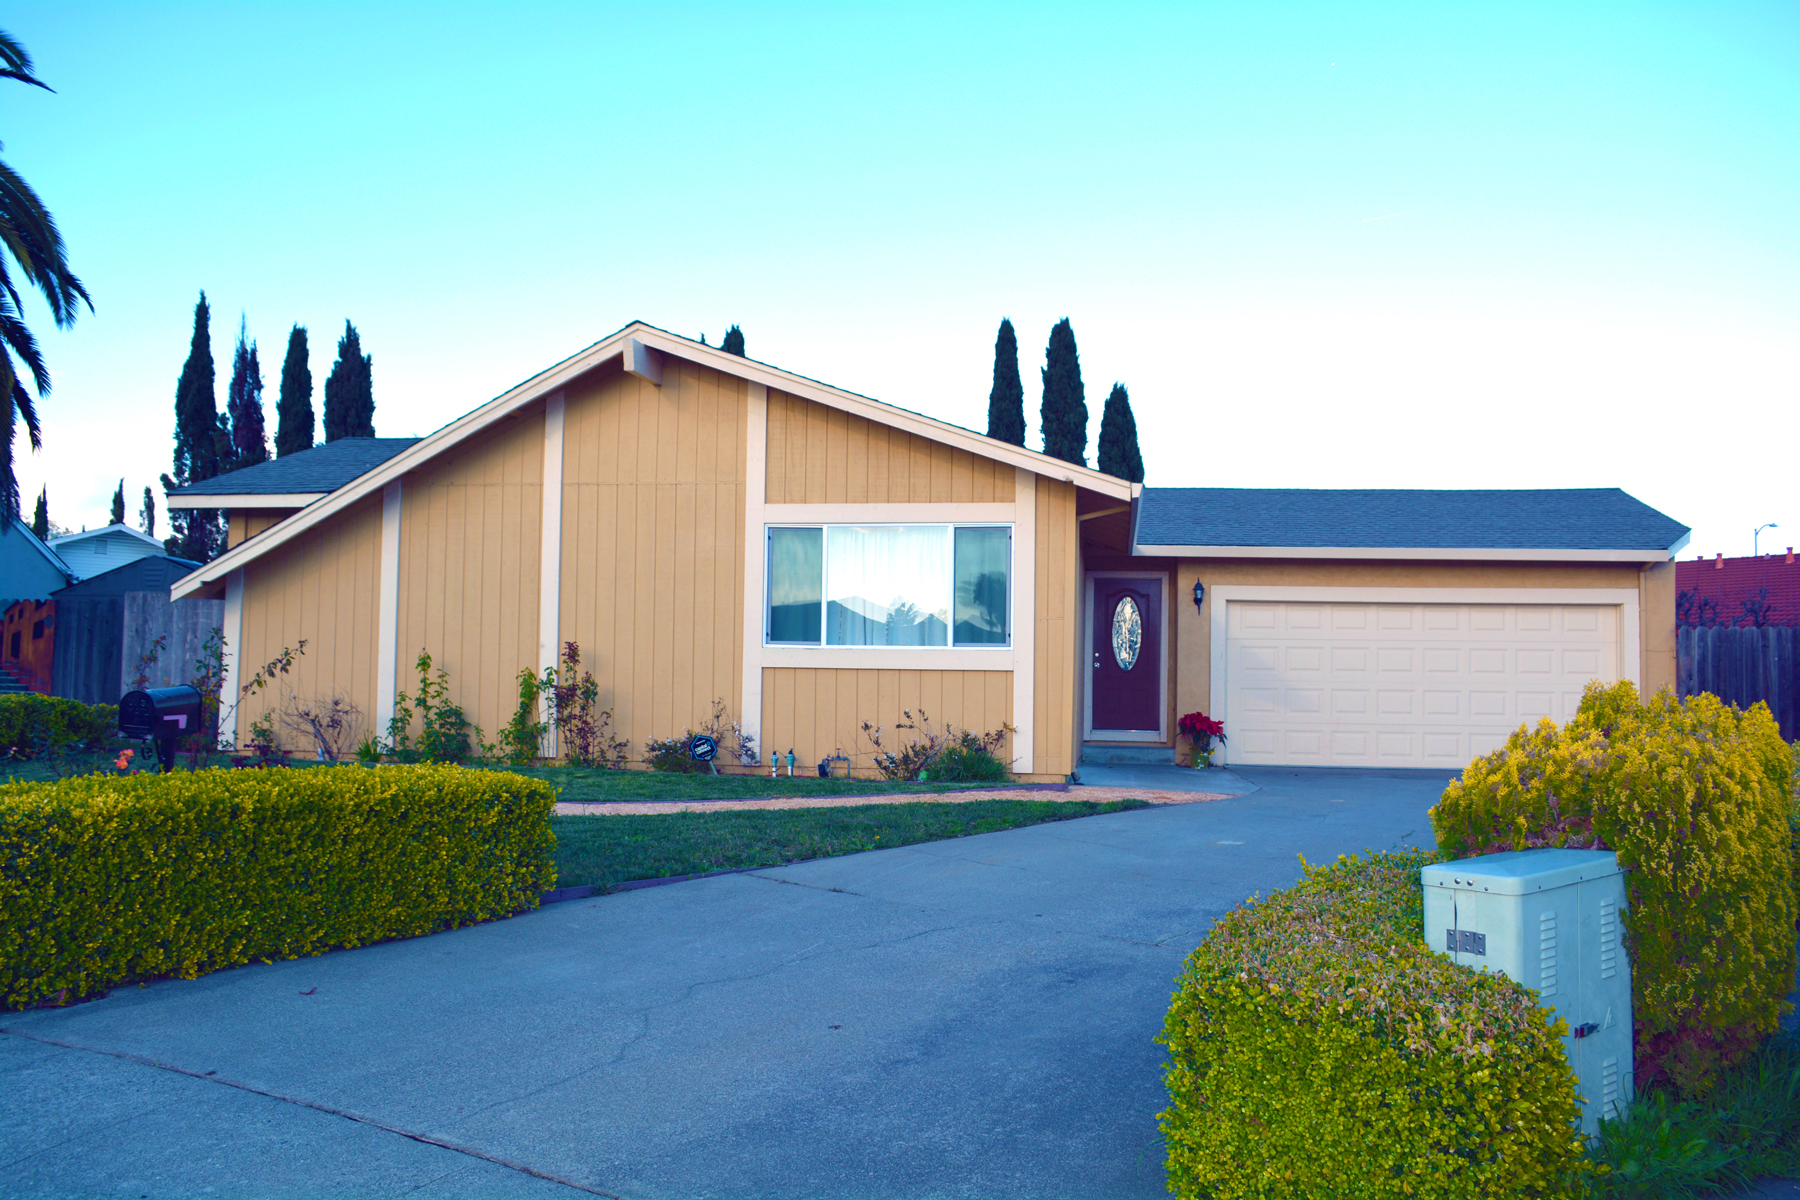 Single Family Home for Sale at Vaulted Ceilings over Hardwood Floors 128 Coloma Way Vallejo, California 94589 United States